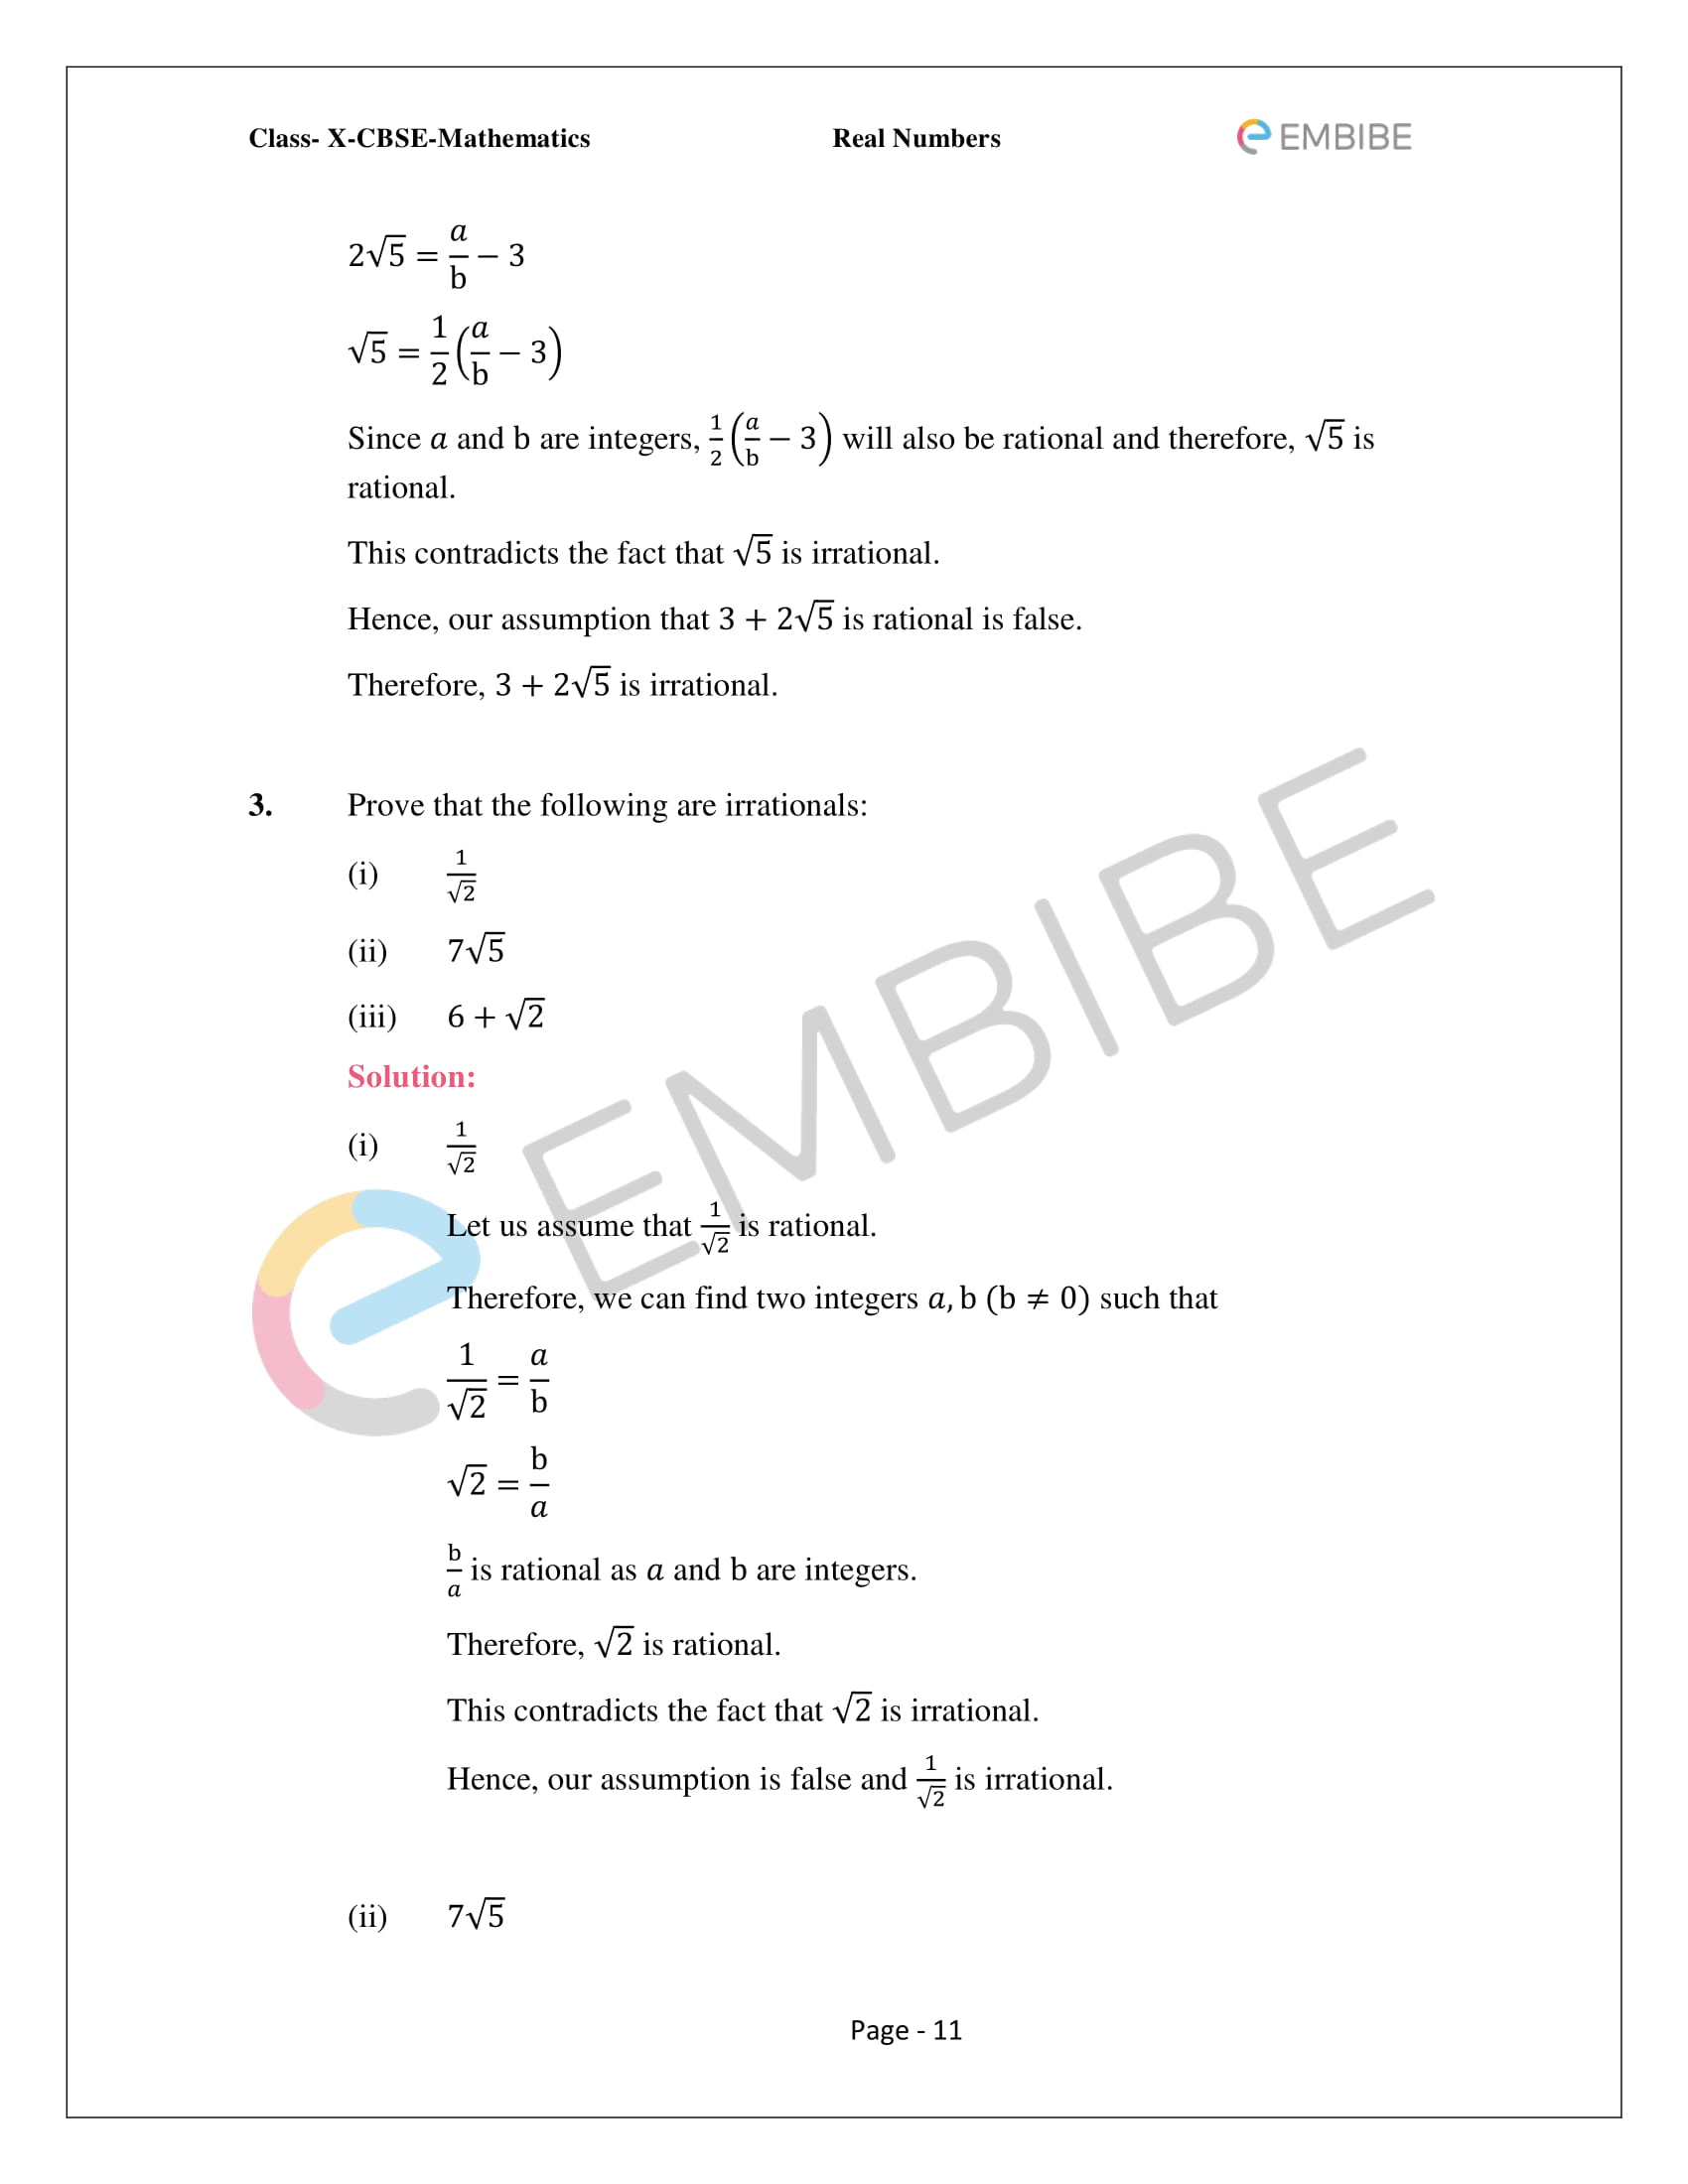 CBSE NCERT Solutions For Class 10 Maths Chapter 1 - Real Numbers - 11